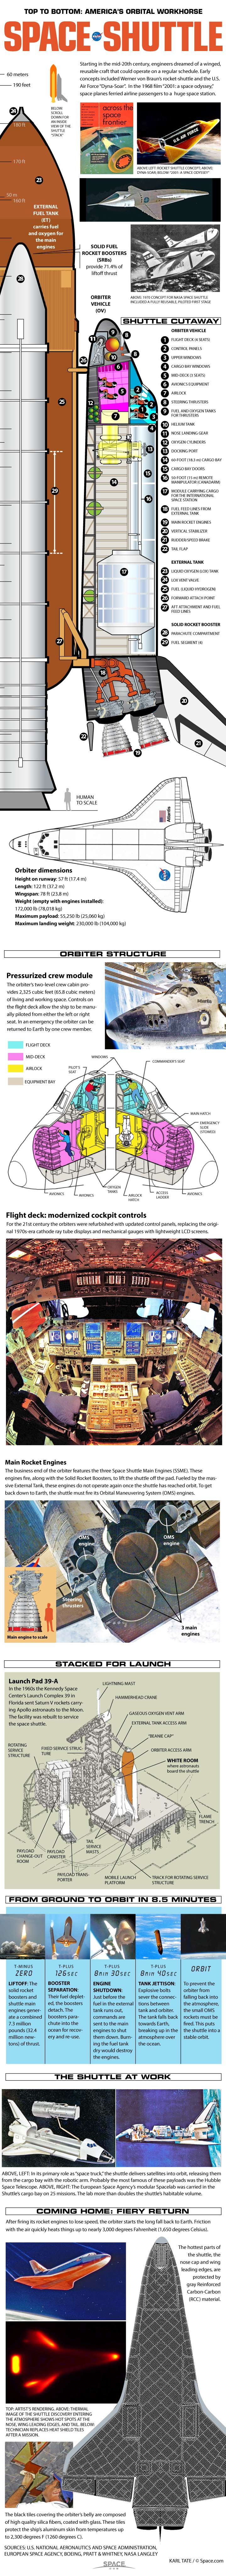 NASA's Space Shuttle – From Top to Bottom